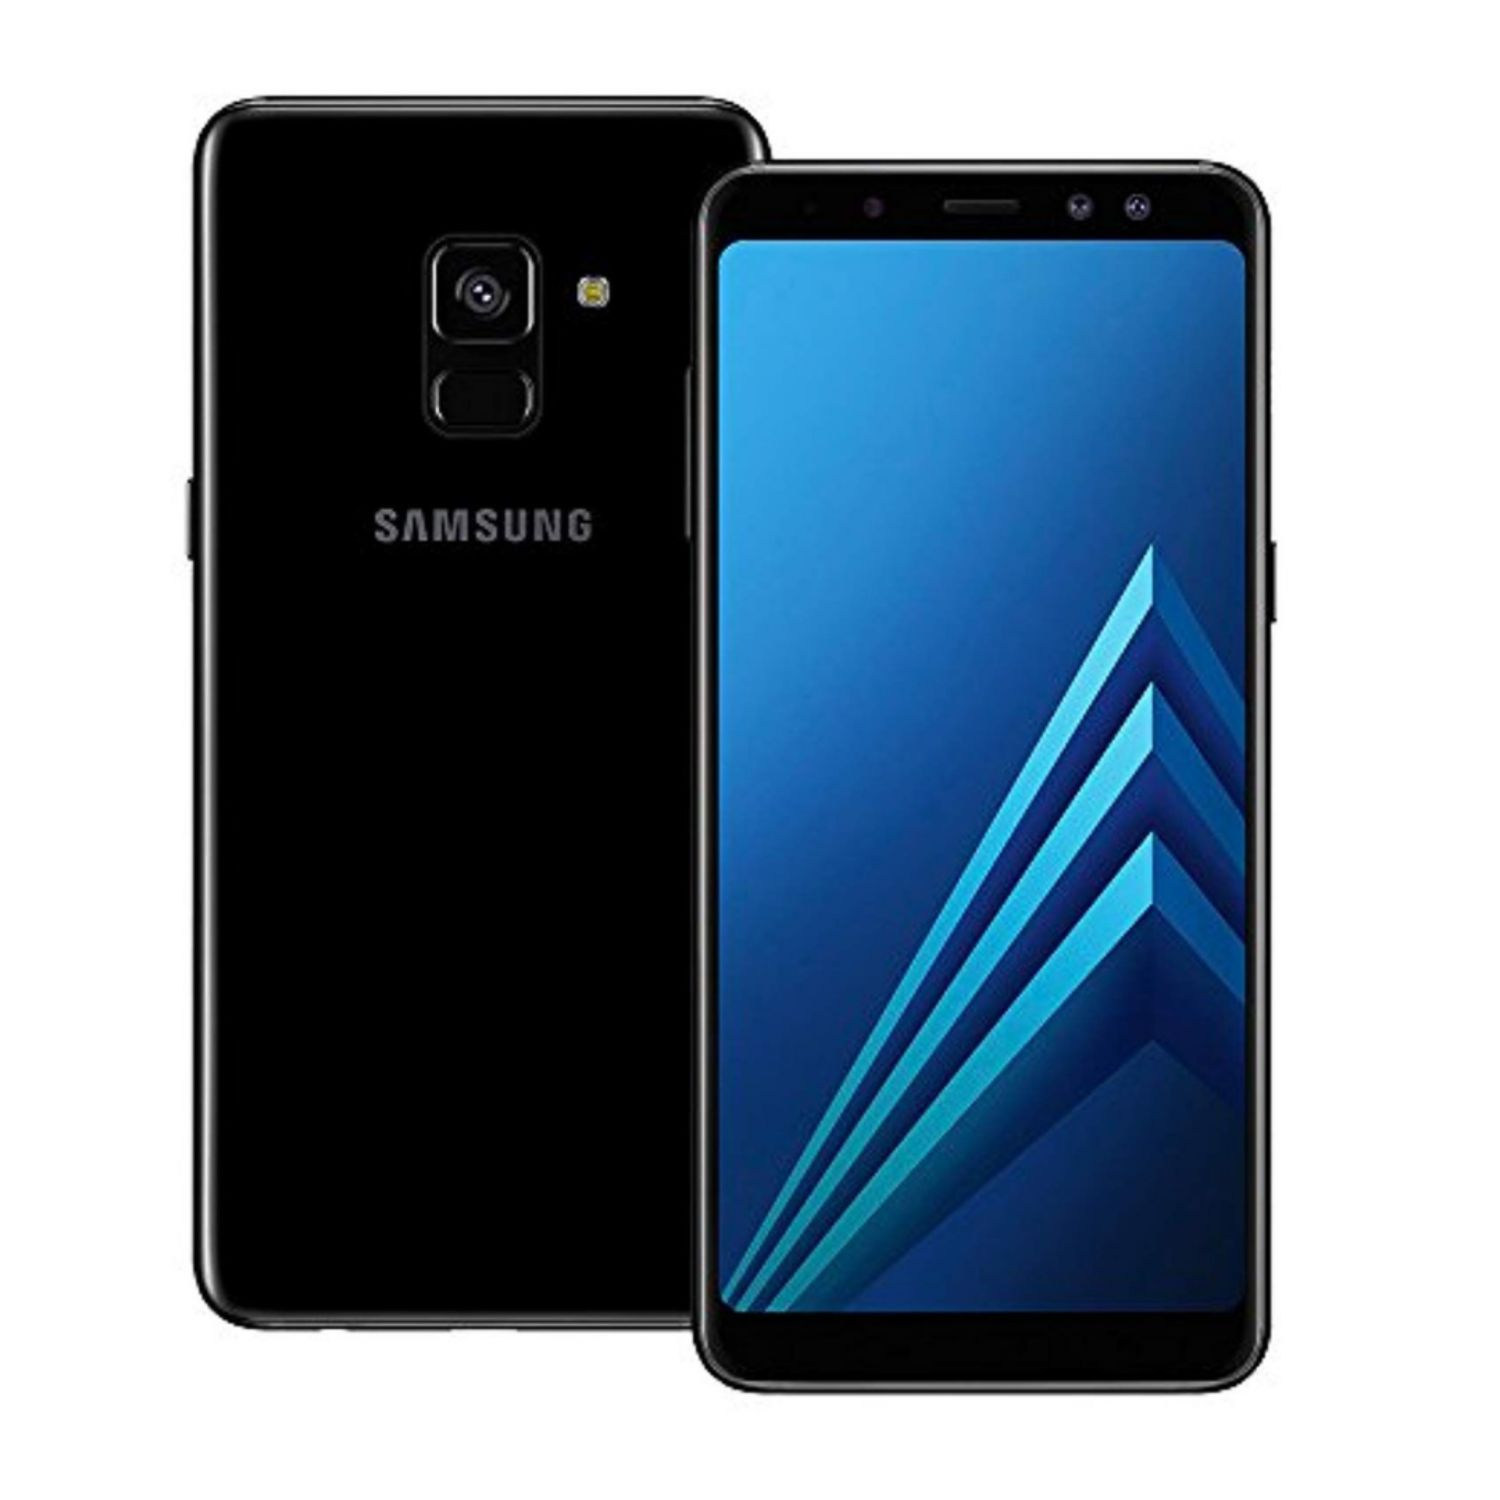 Samsung Galaxy A8 plus фото